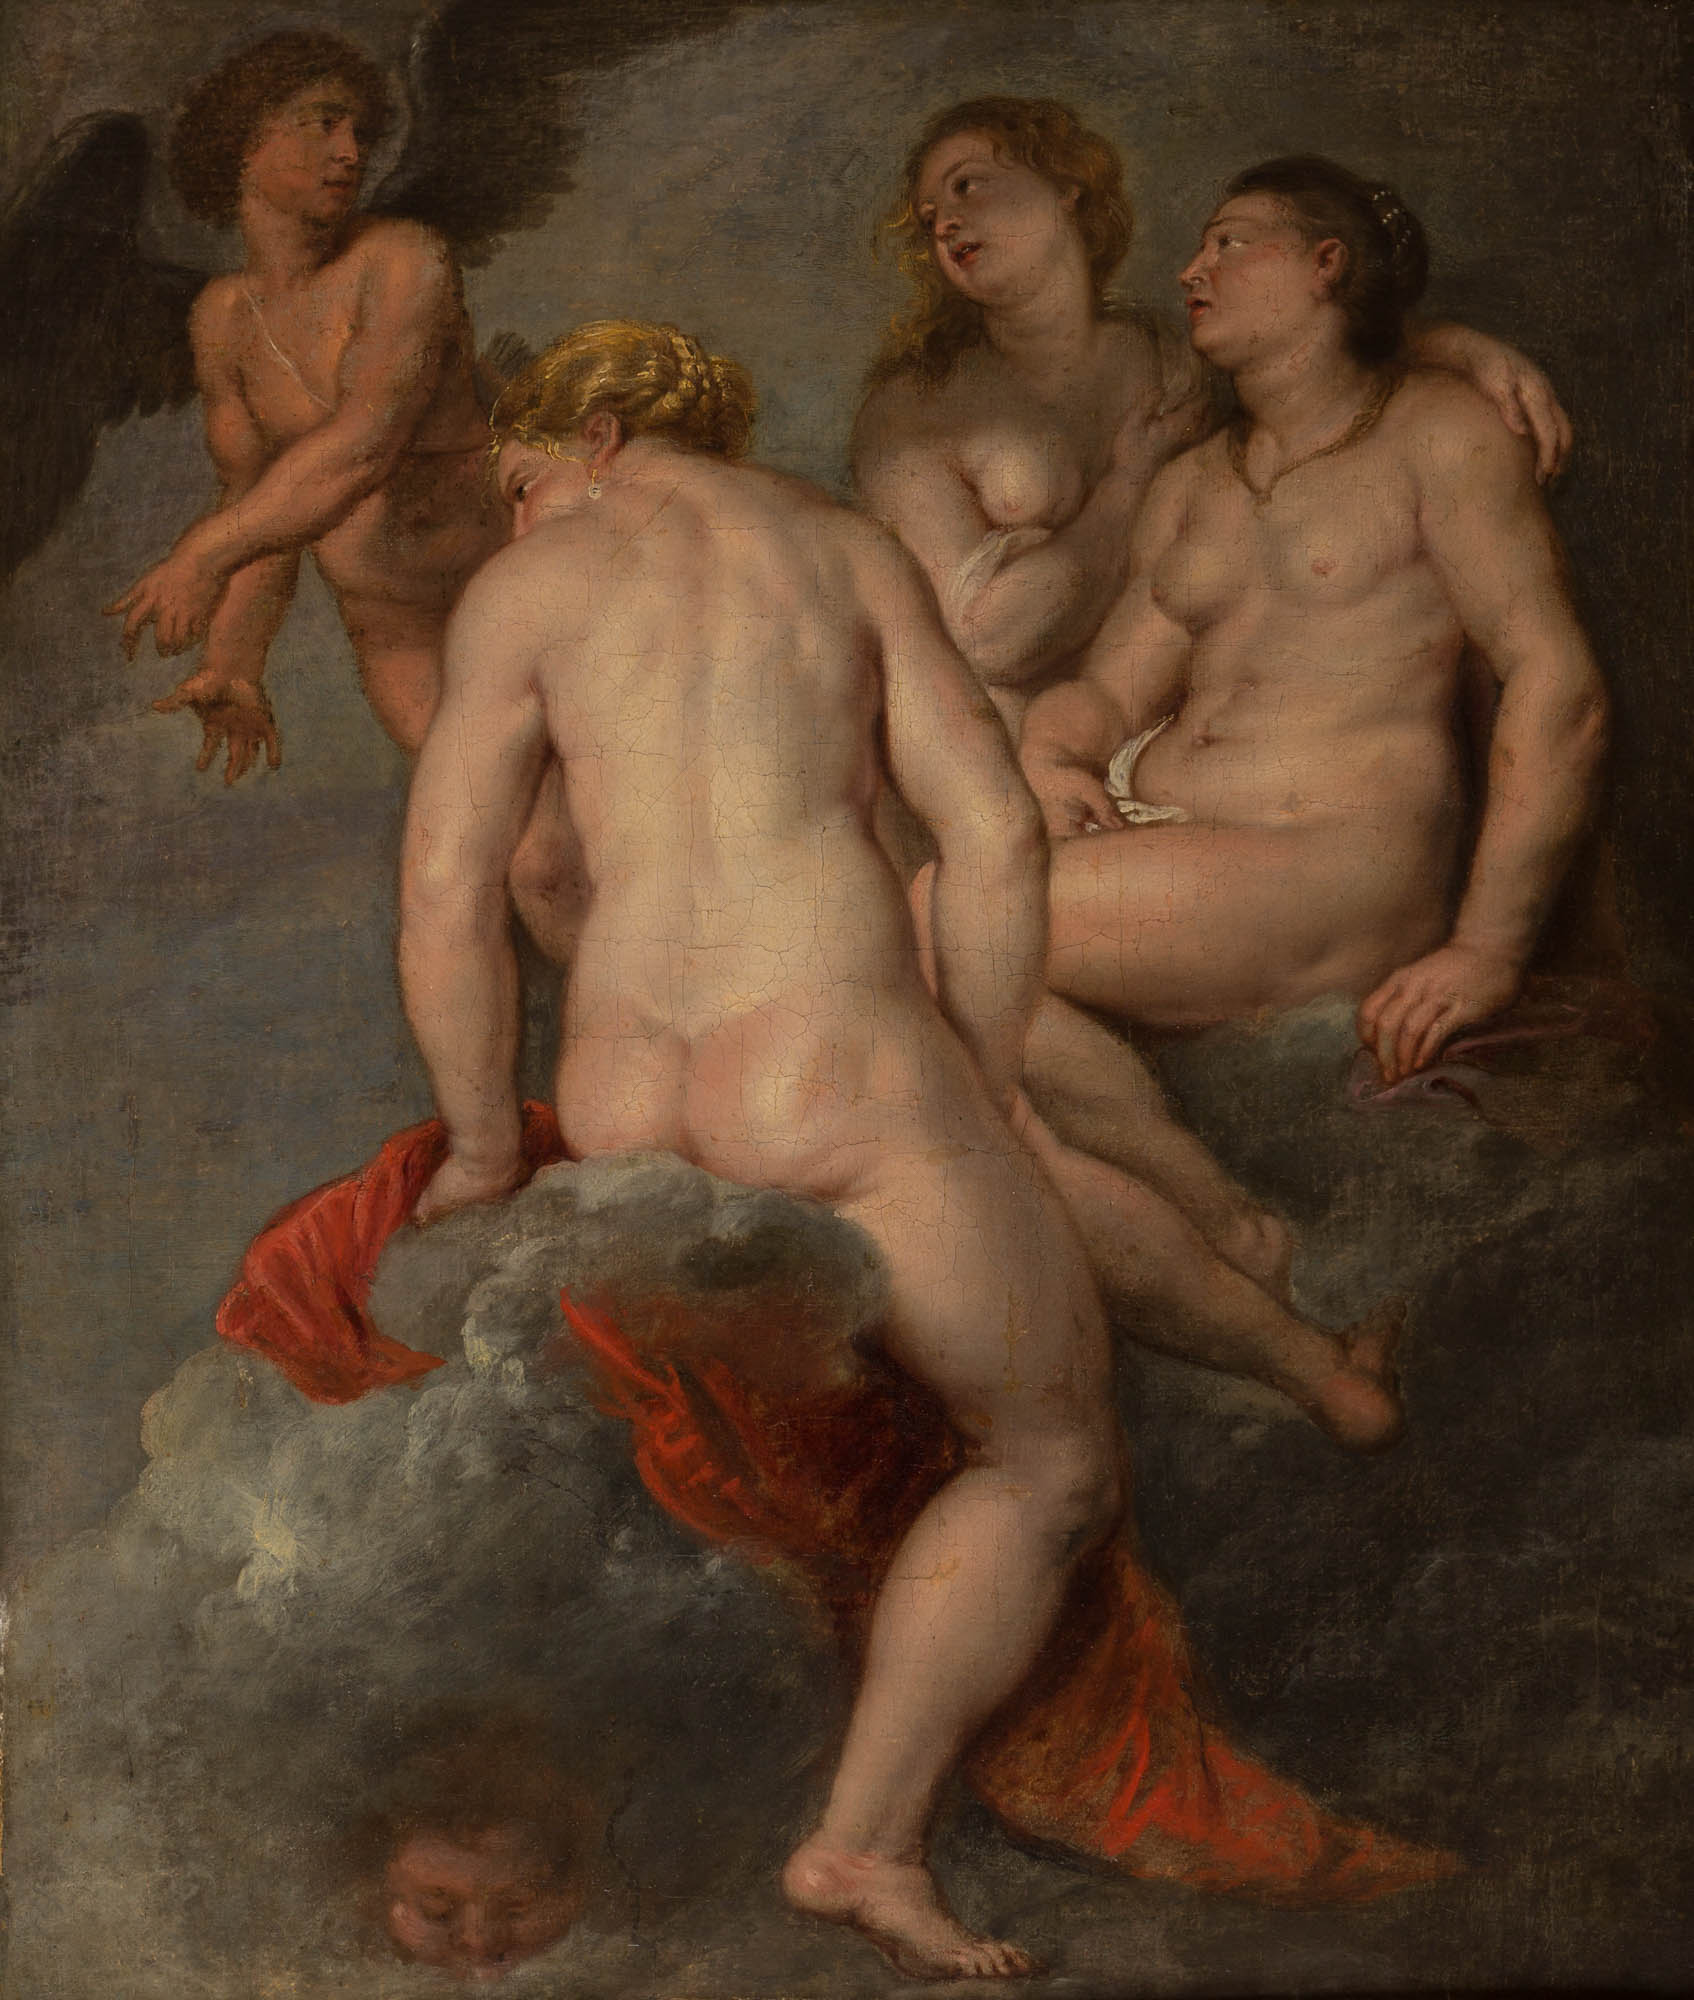 The Three Graces Upon Clouds, Follower of Sir Peter Paul Rubens (1577-1640).